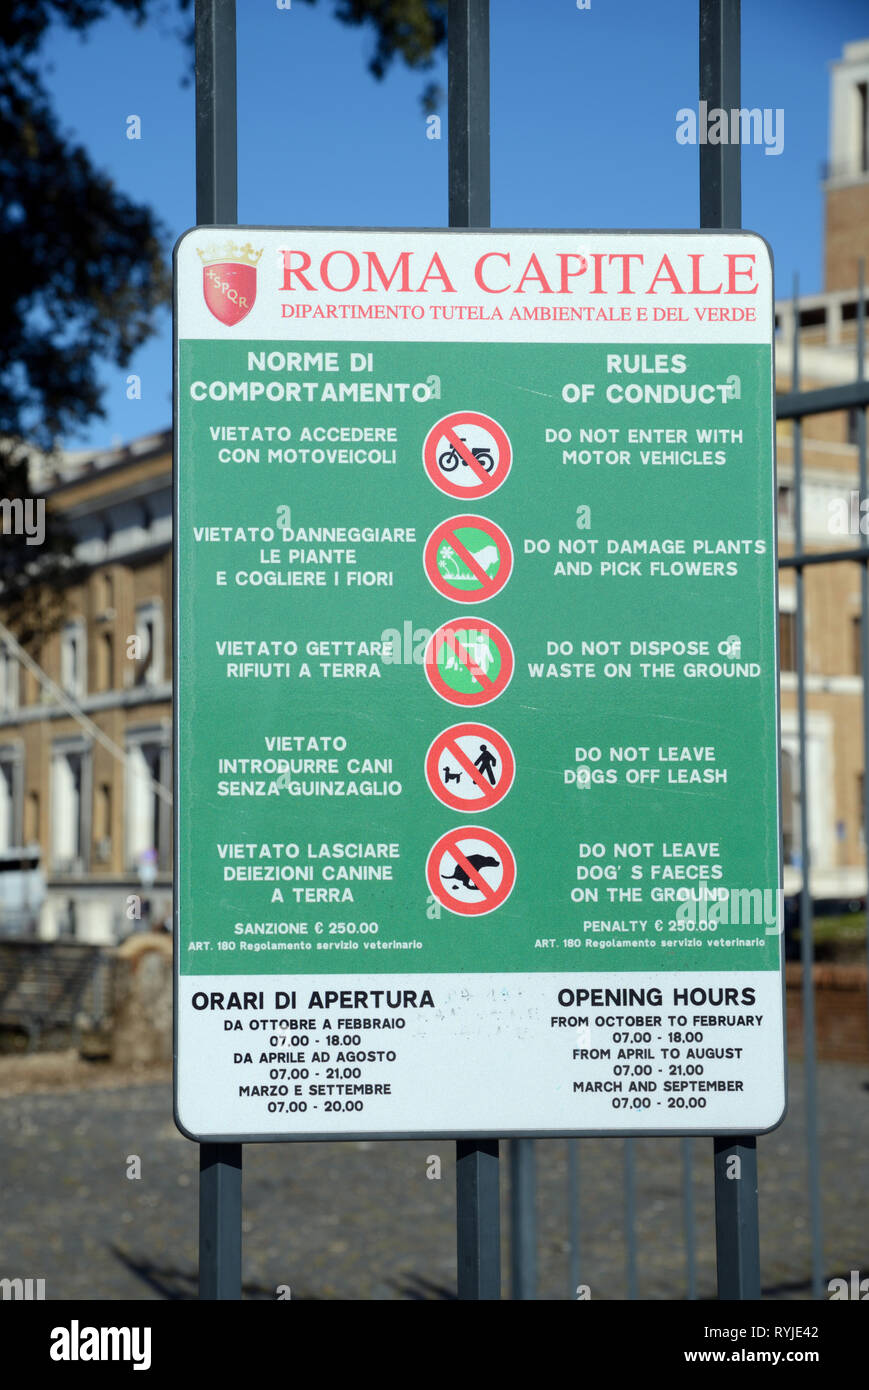 Information Sign Listing Park Rules for Visiting Castel Sant'Angelo Park Rome Italy - Stock Image